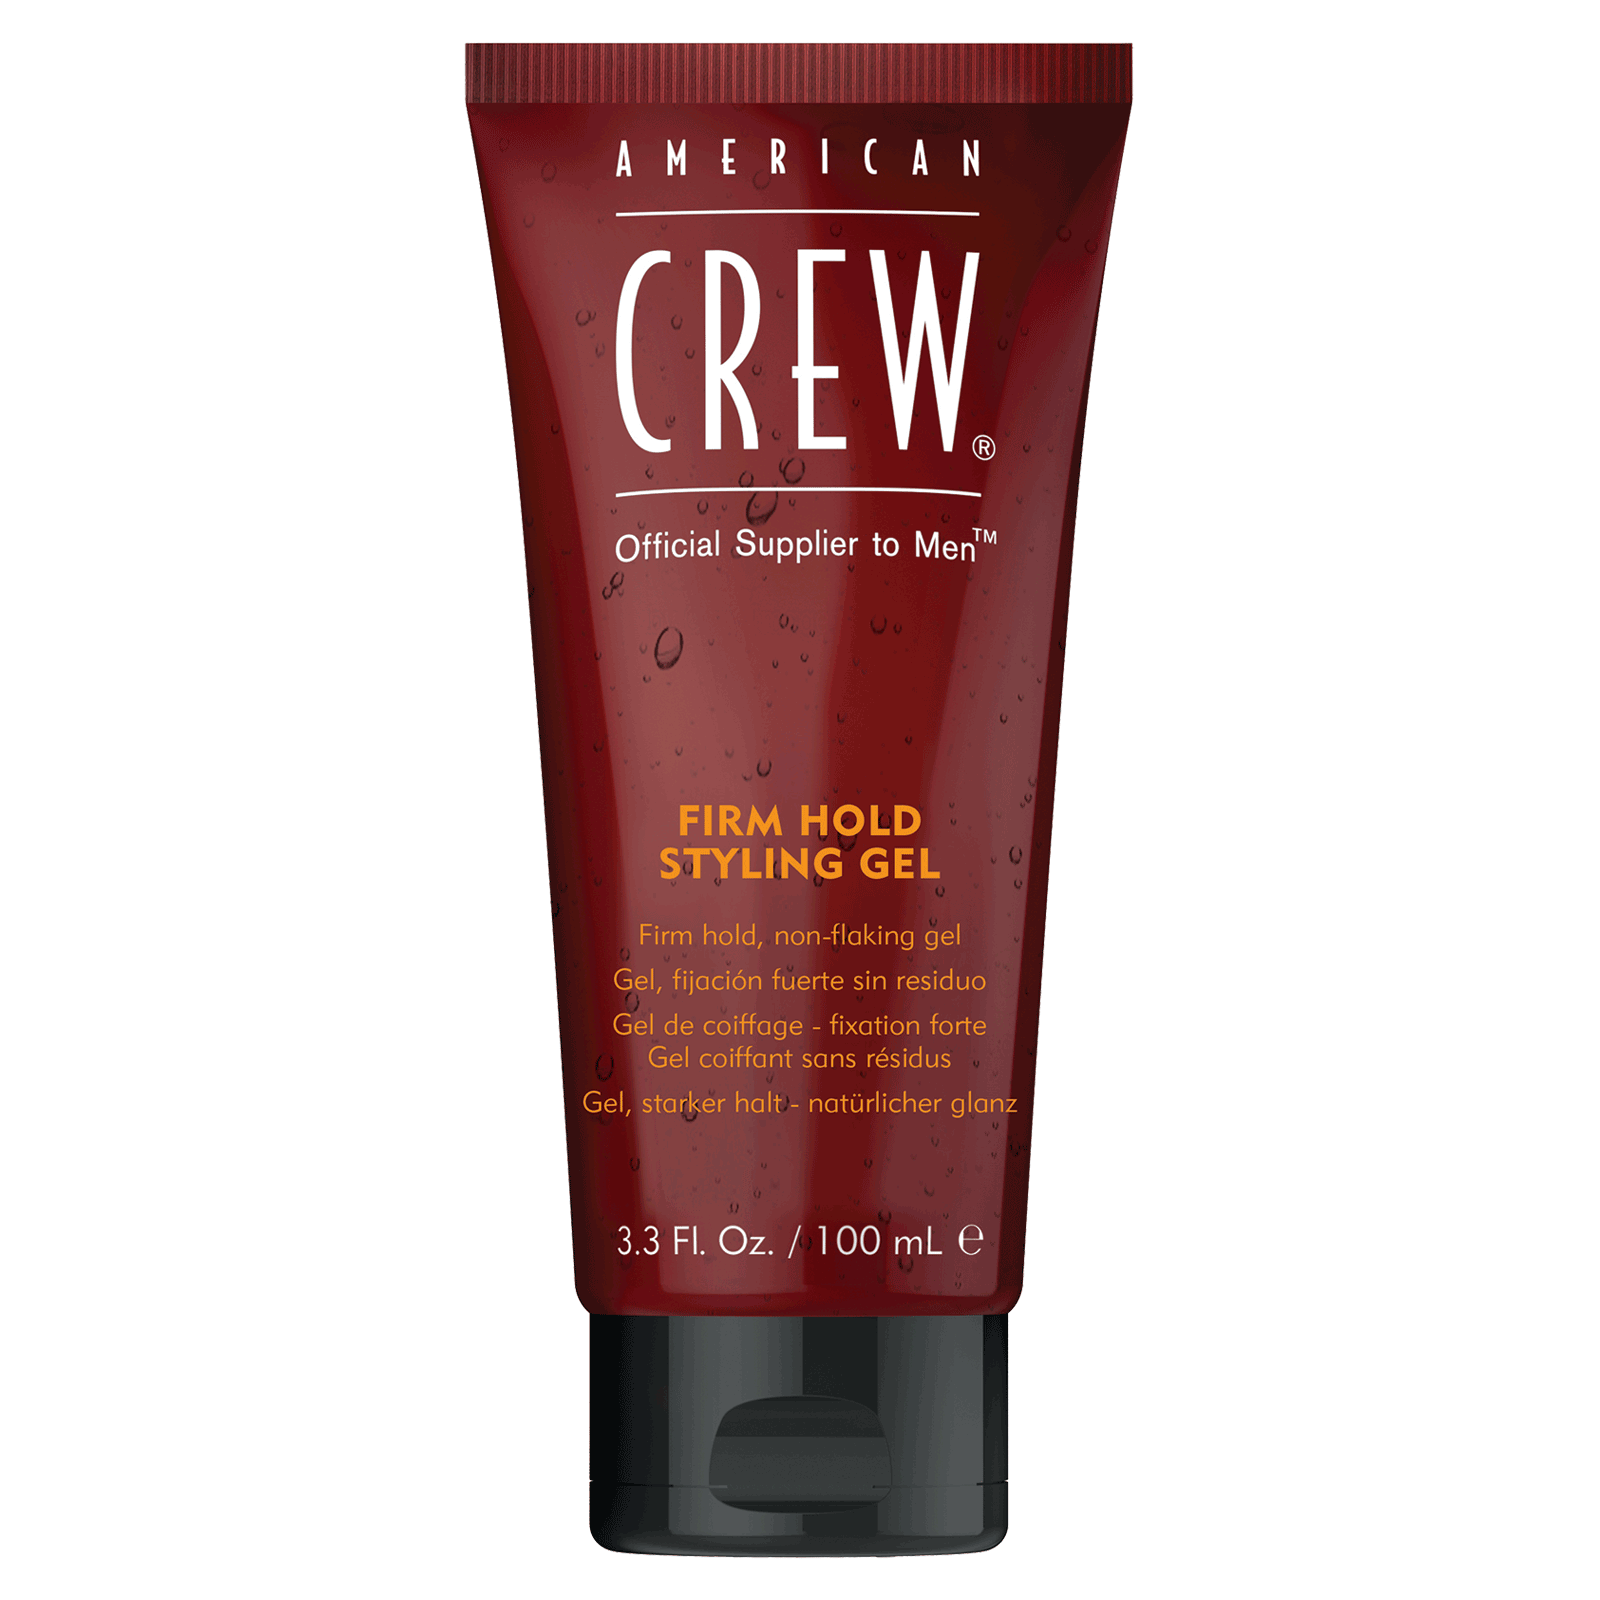 Classic Firm Hold Styling Gel